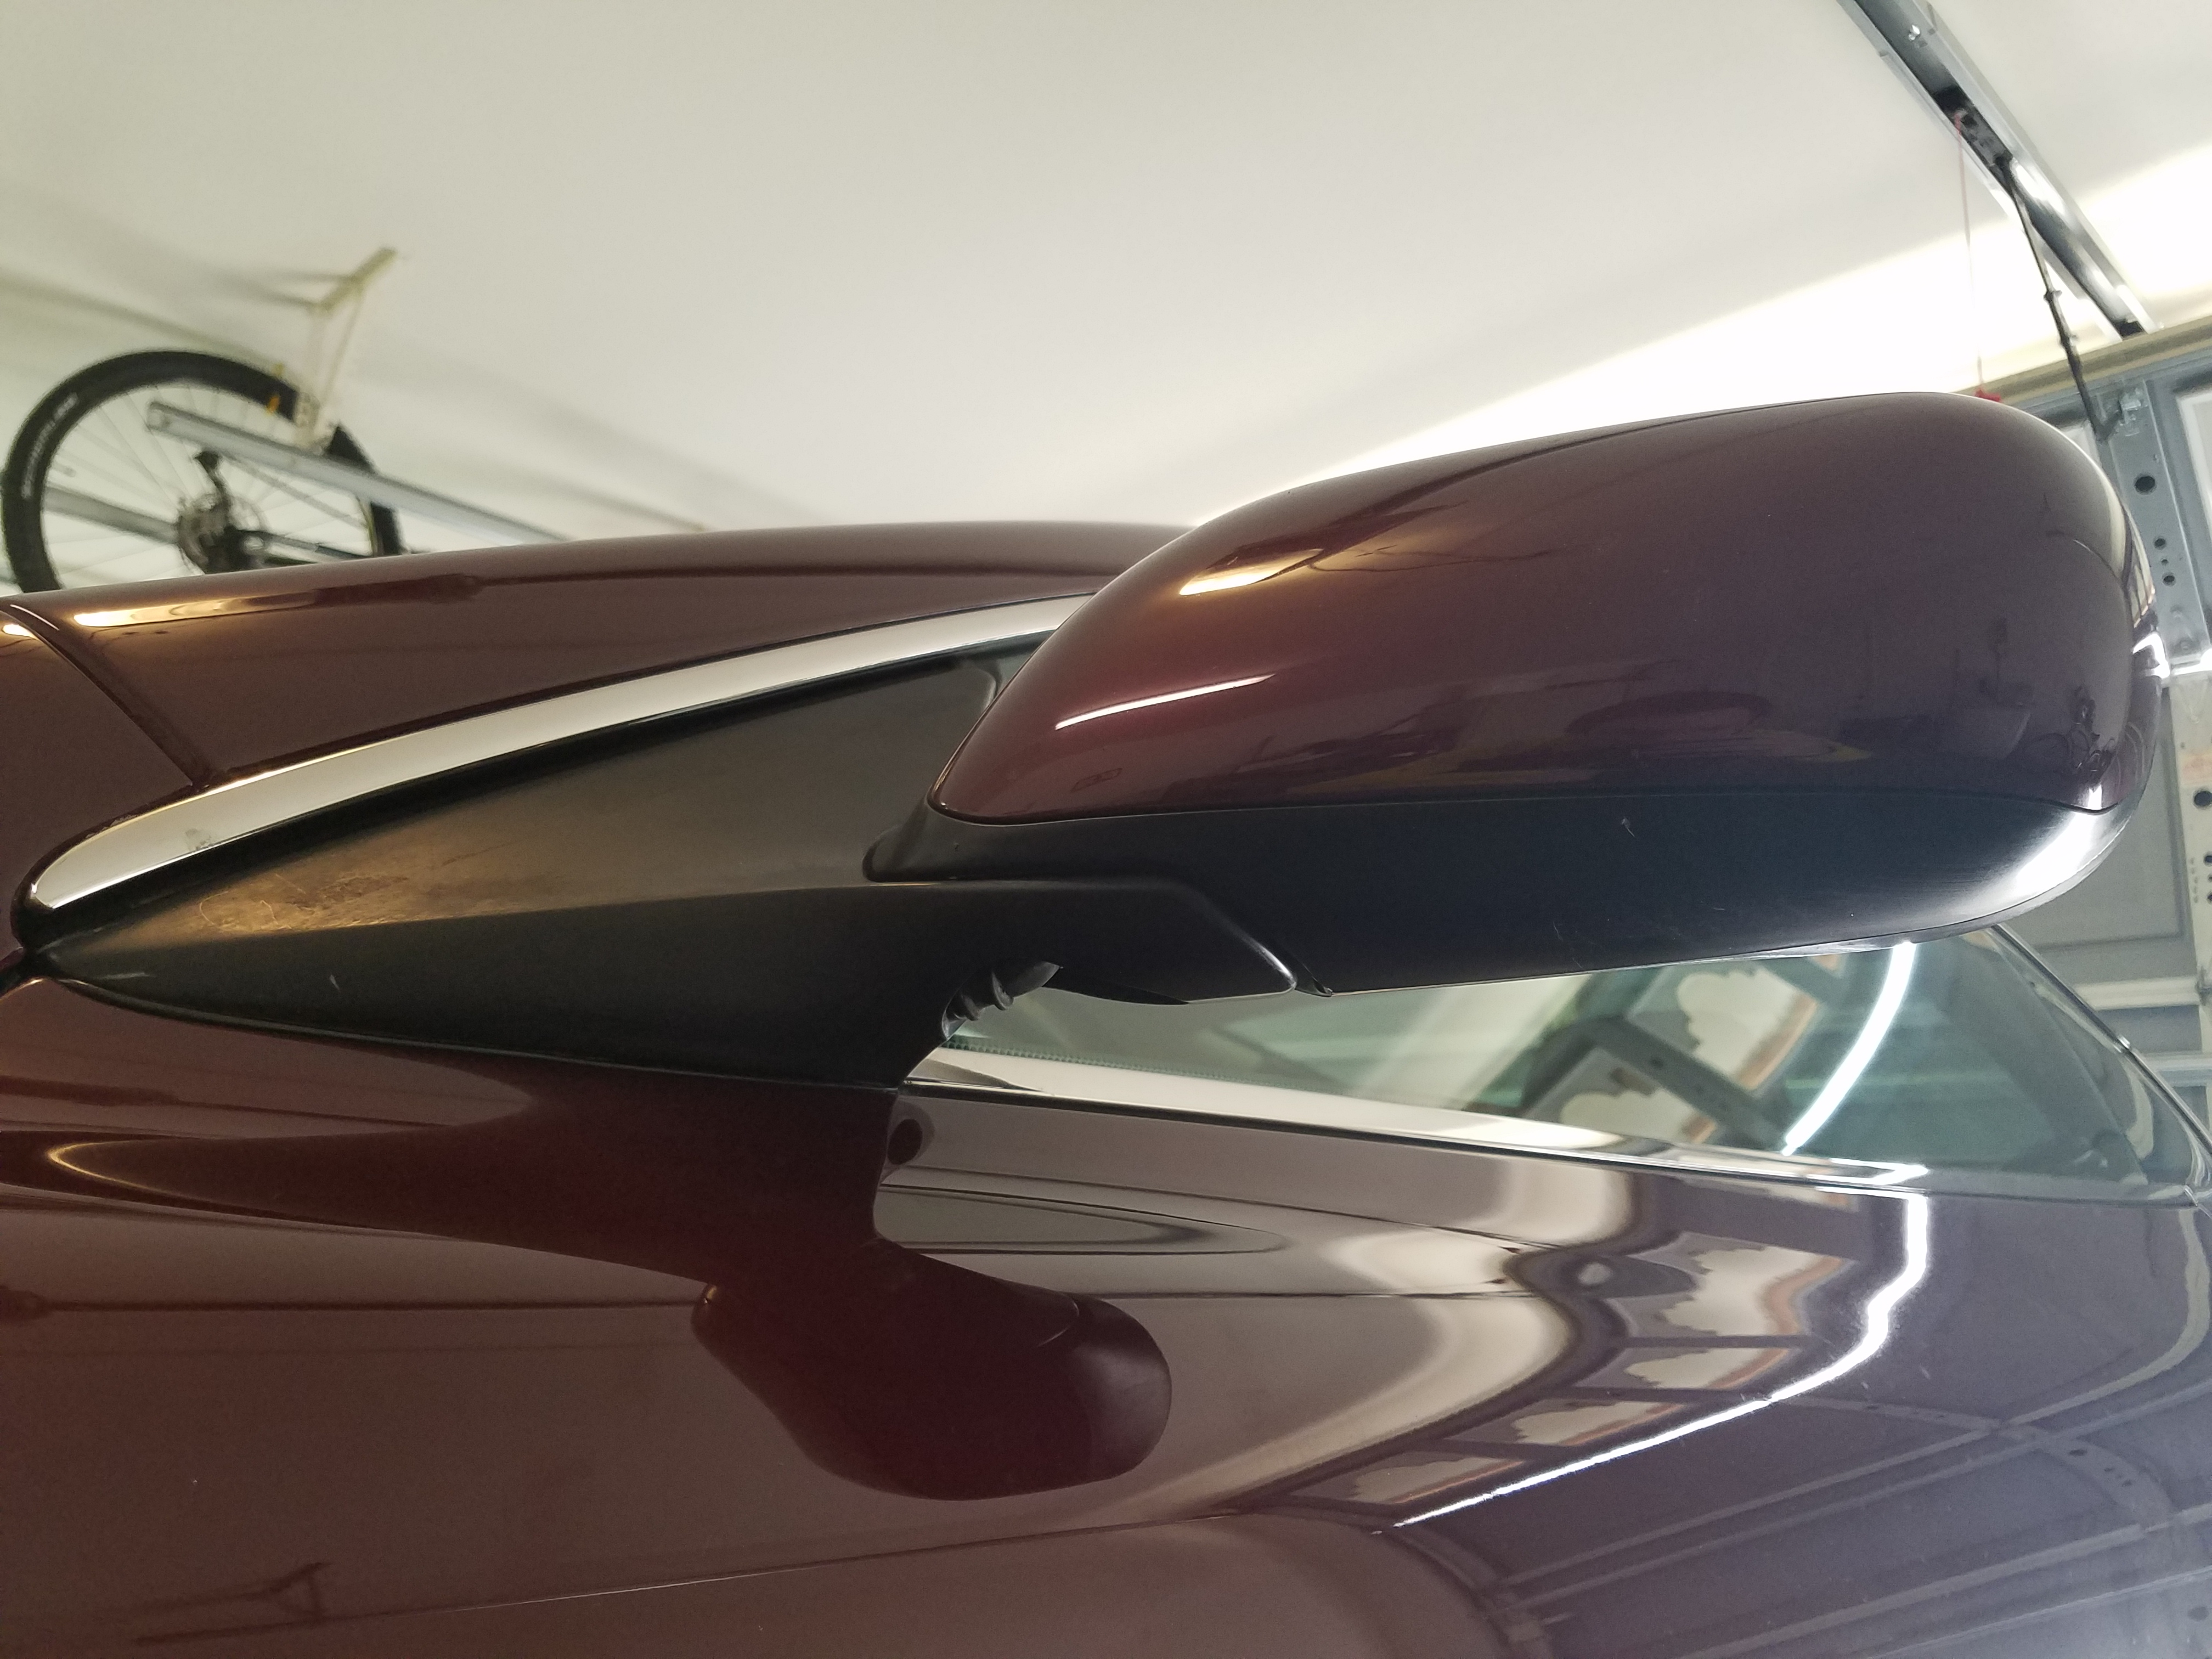 aston martin db9 wing side mirror fixing a loose wing side mirror on an aston martin db9 aston 1936